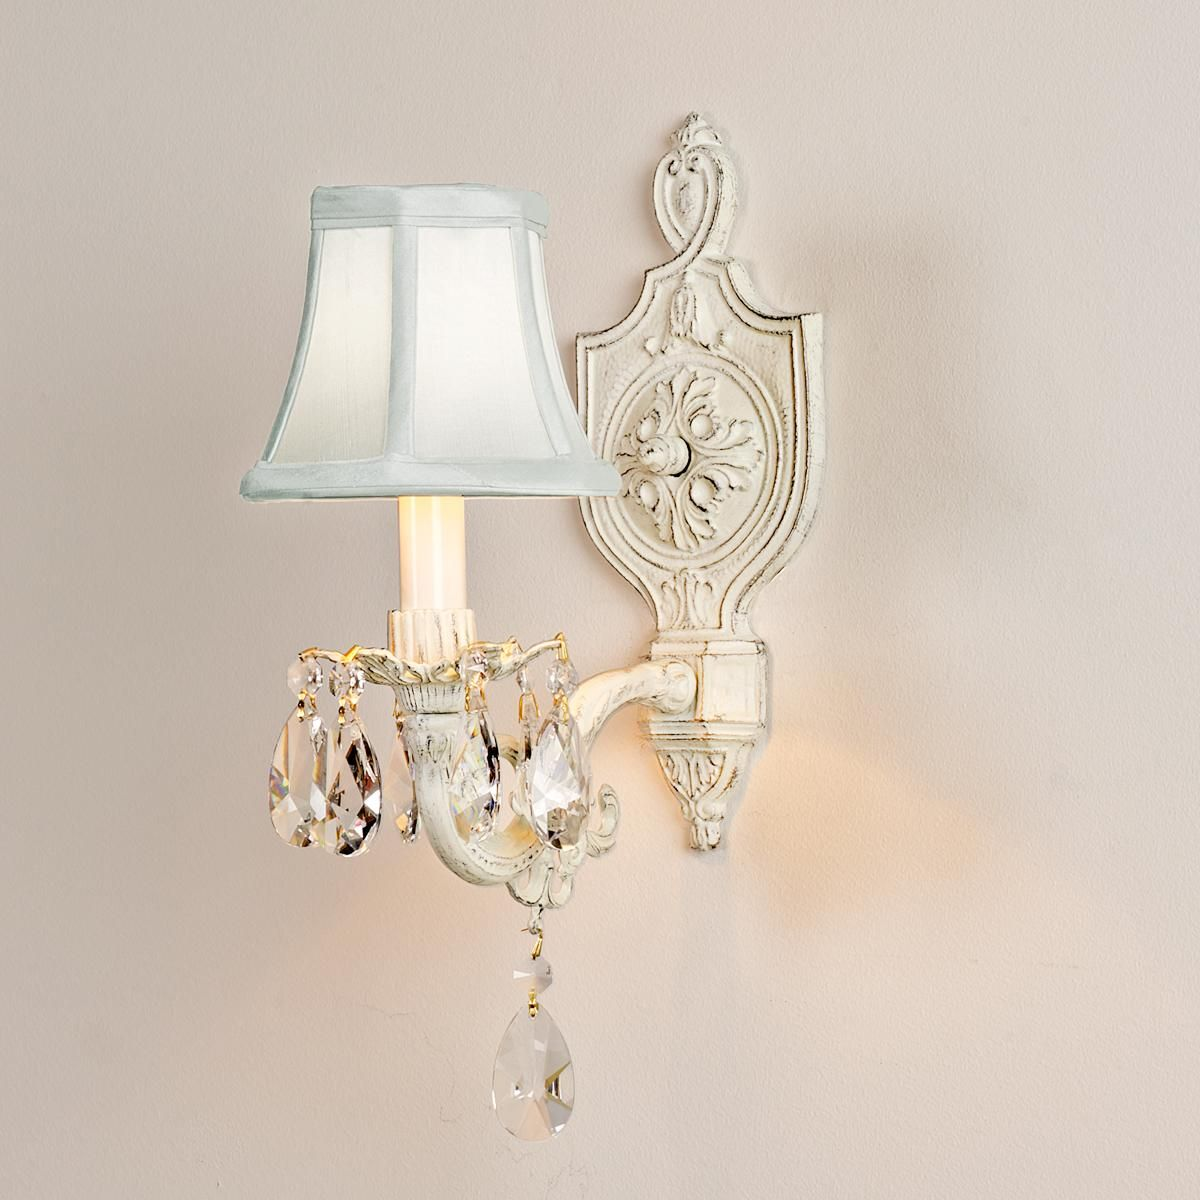 Vintage Cottage Chic Sconce Shabby Chic Bathroom Sconces Bathroom Wall Sconces